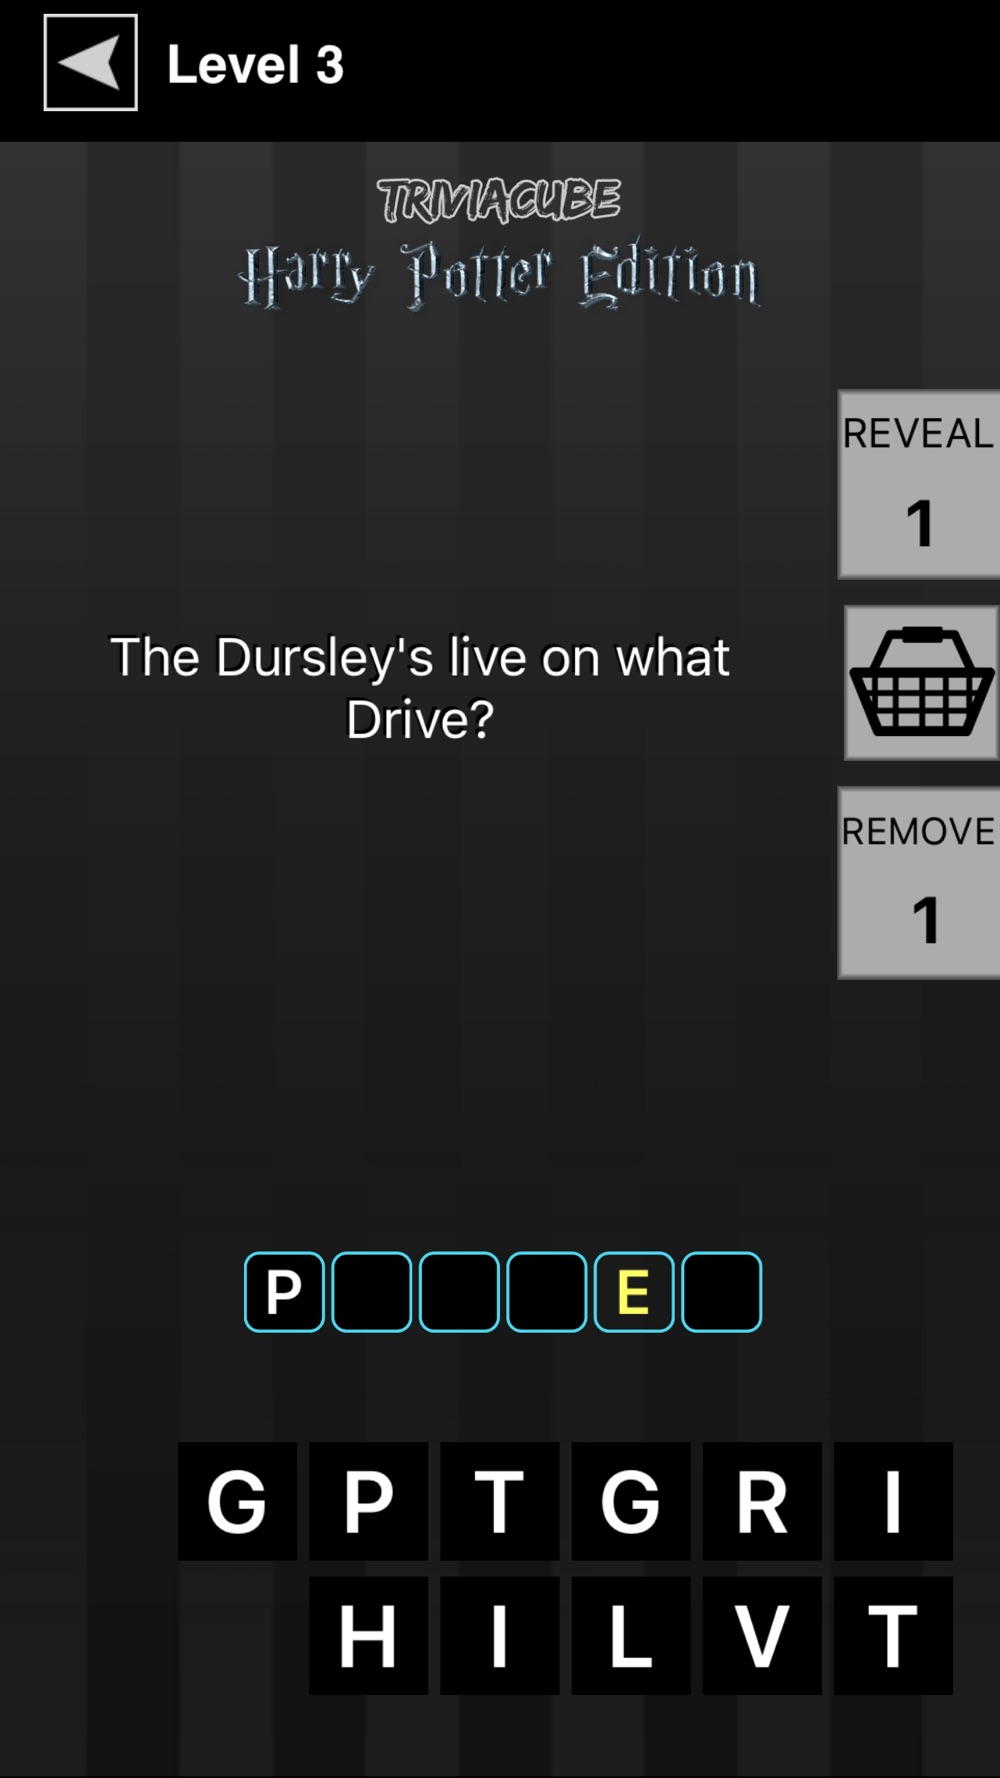 TriviaCube: Trivia Game for Harry Potter Cheat Codes